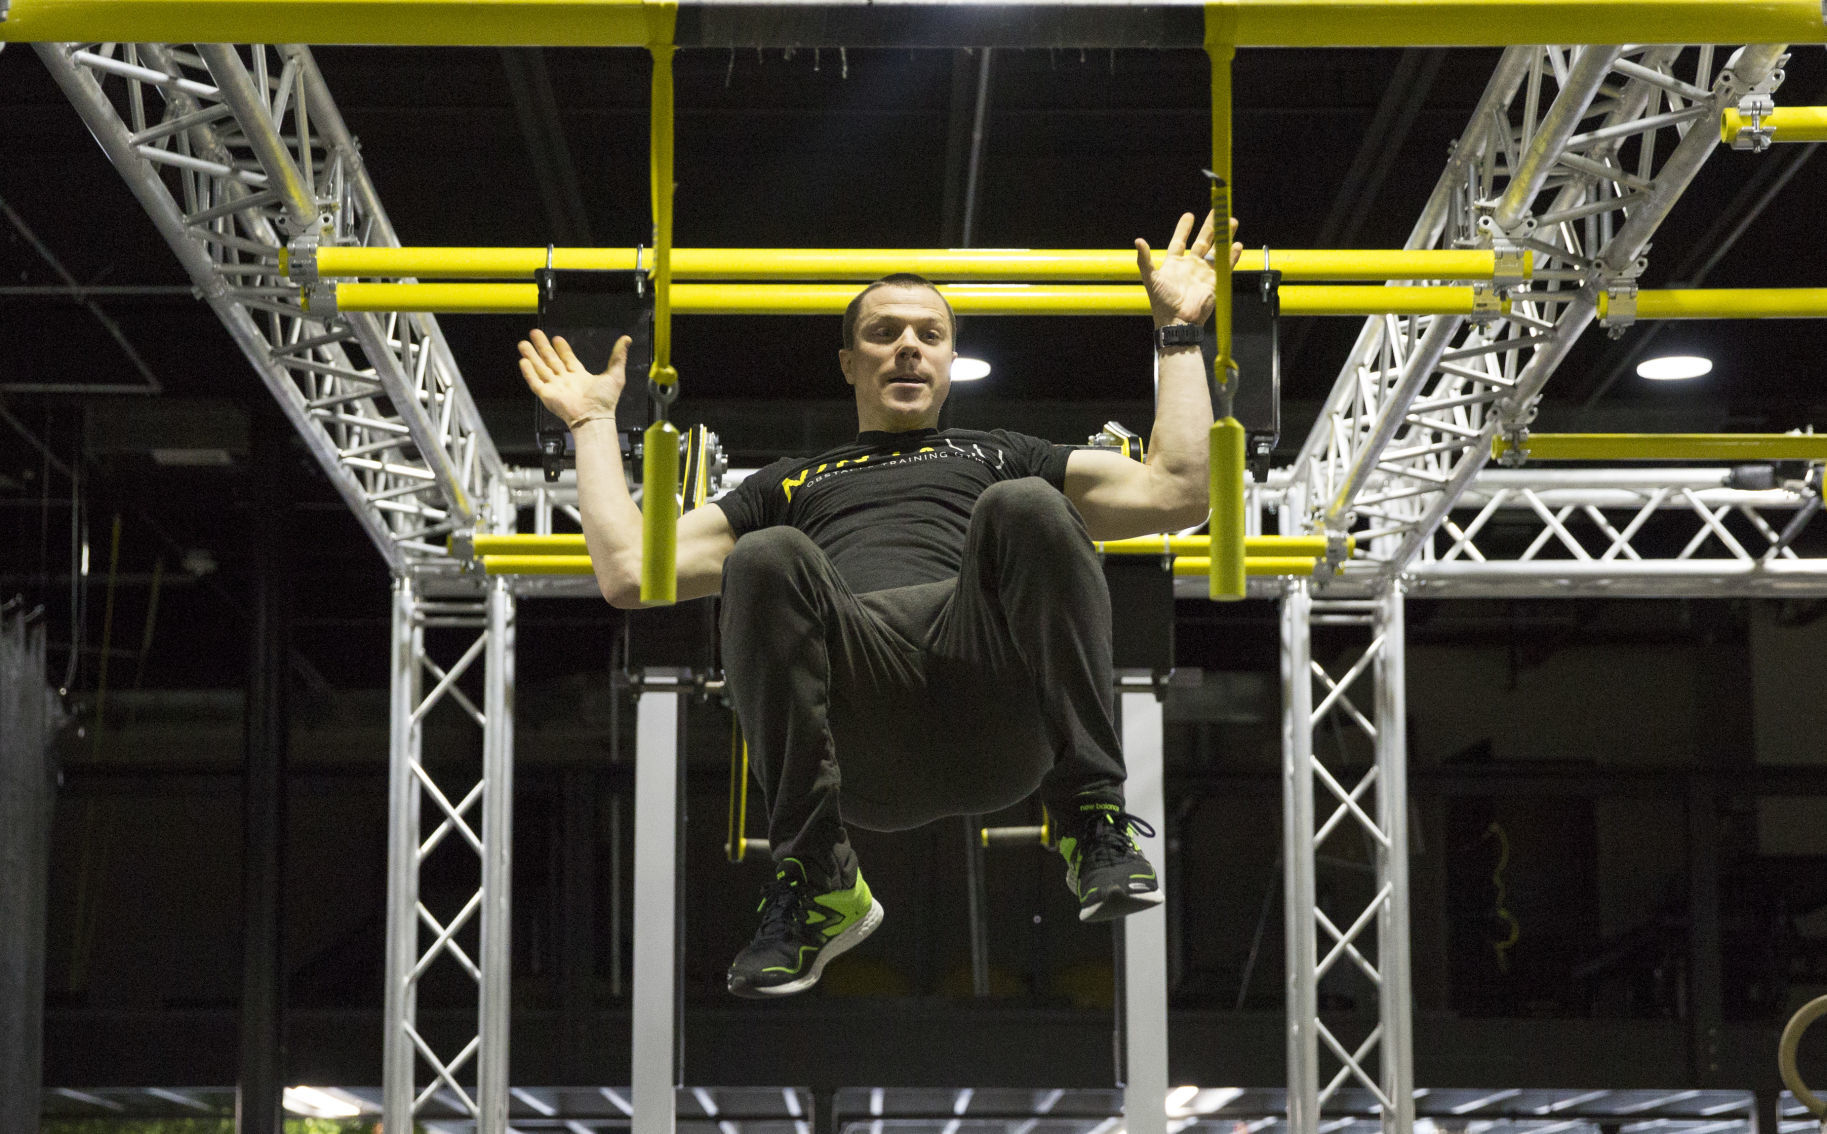 Garage Gym Warrior Cedar Valley Residents Appearing On American Ninja Warrior Shows